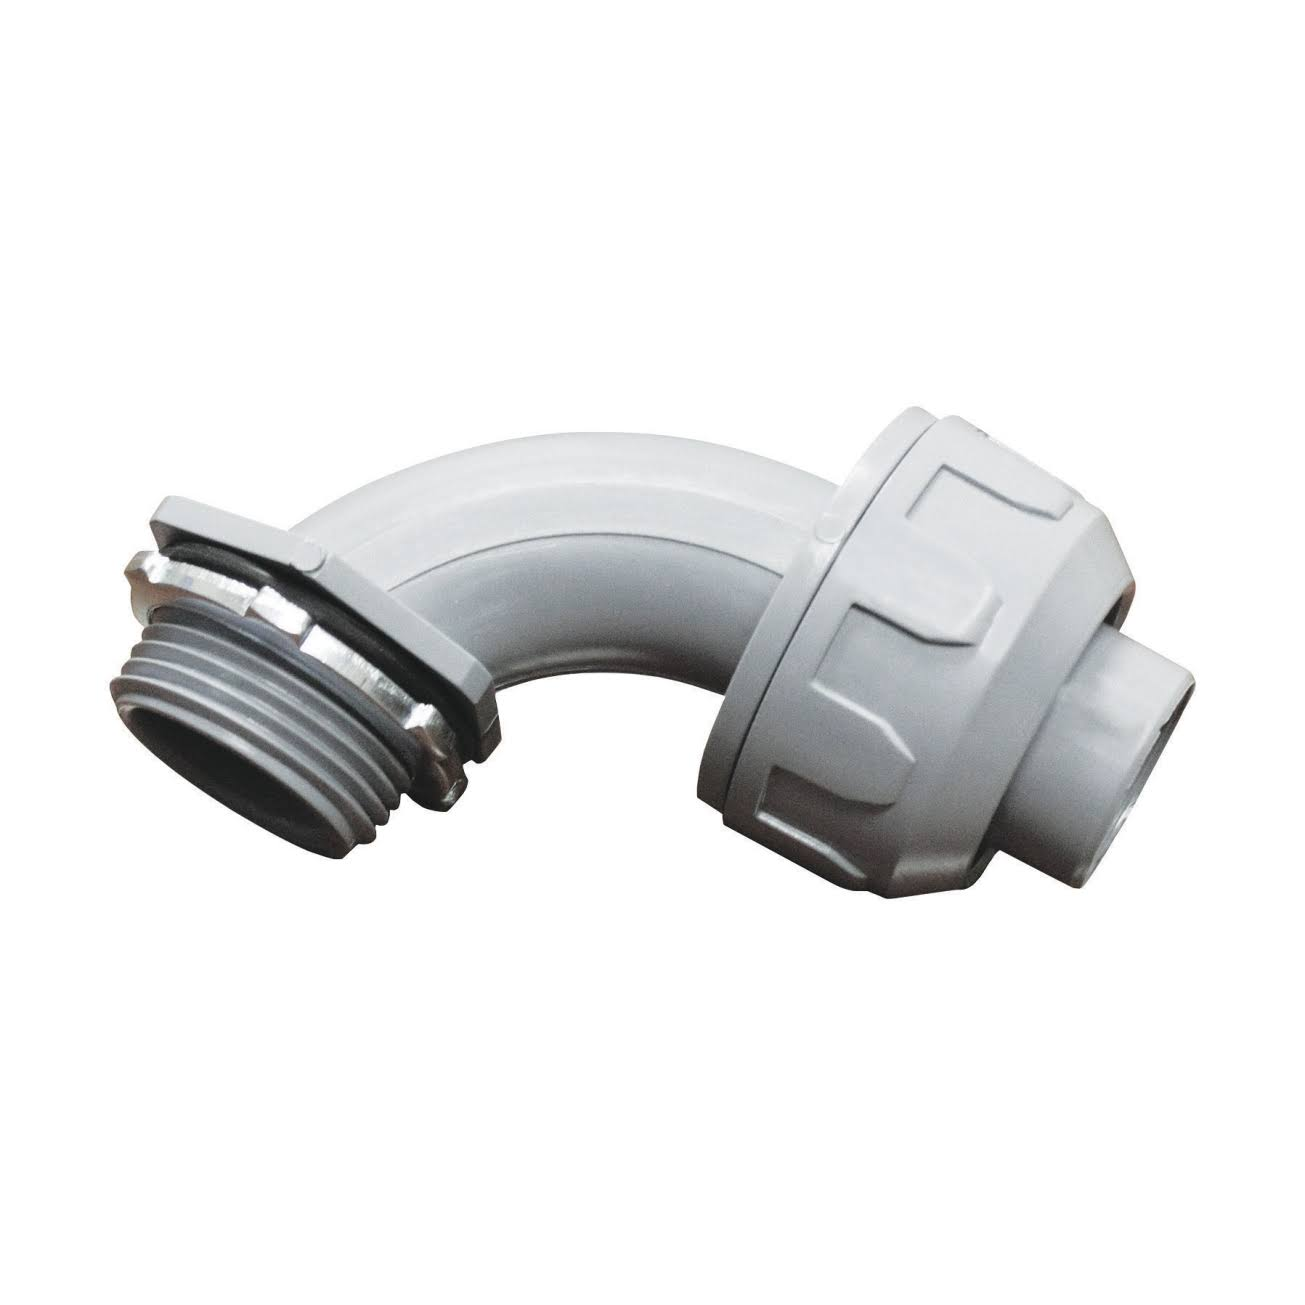 Sigma Electric Liquid Tight Connector - 1/2in, 90 Degree